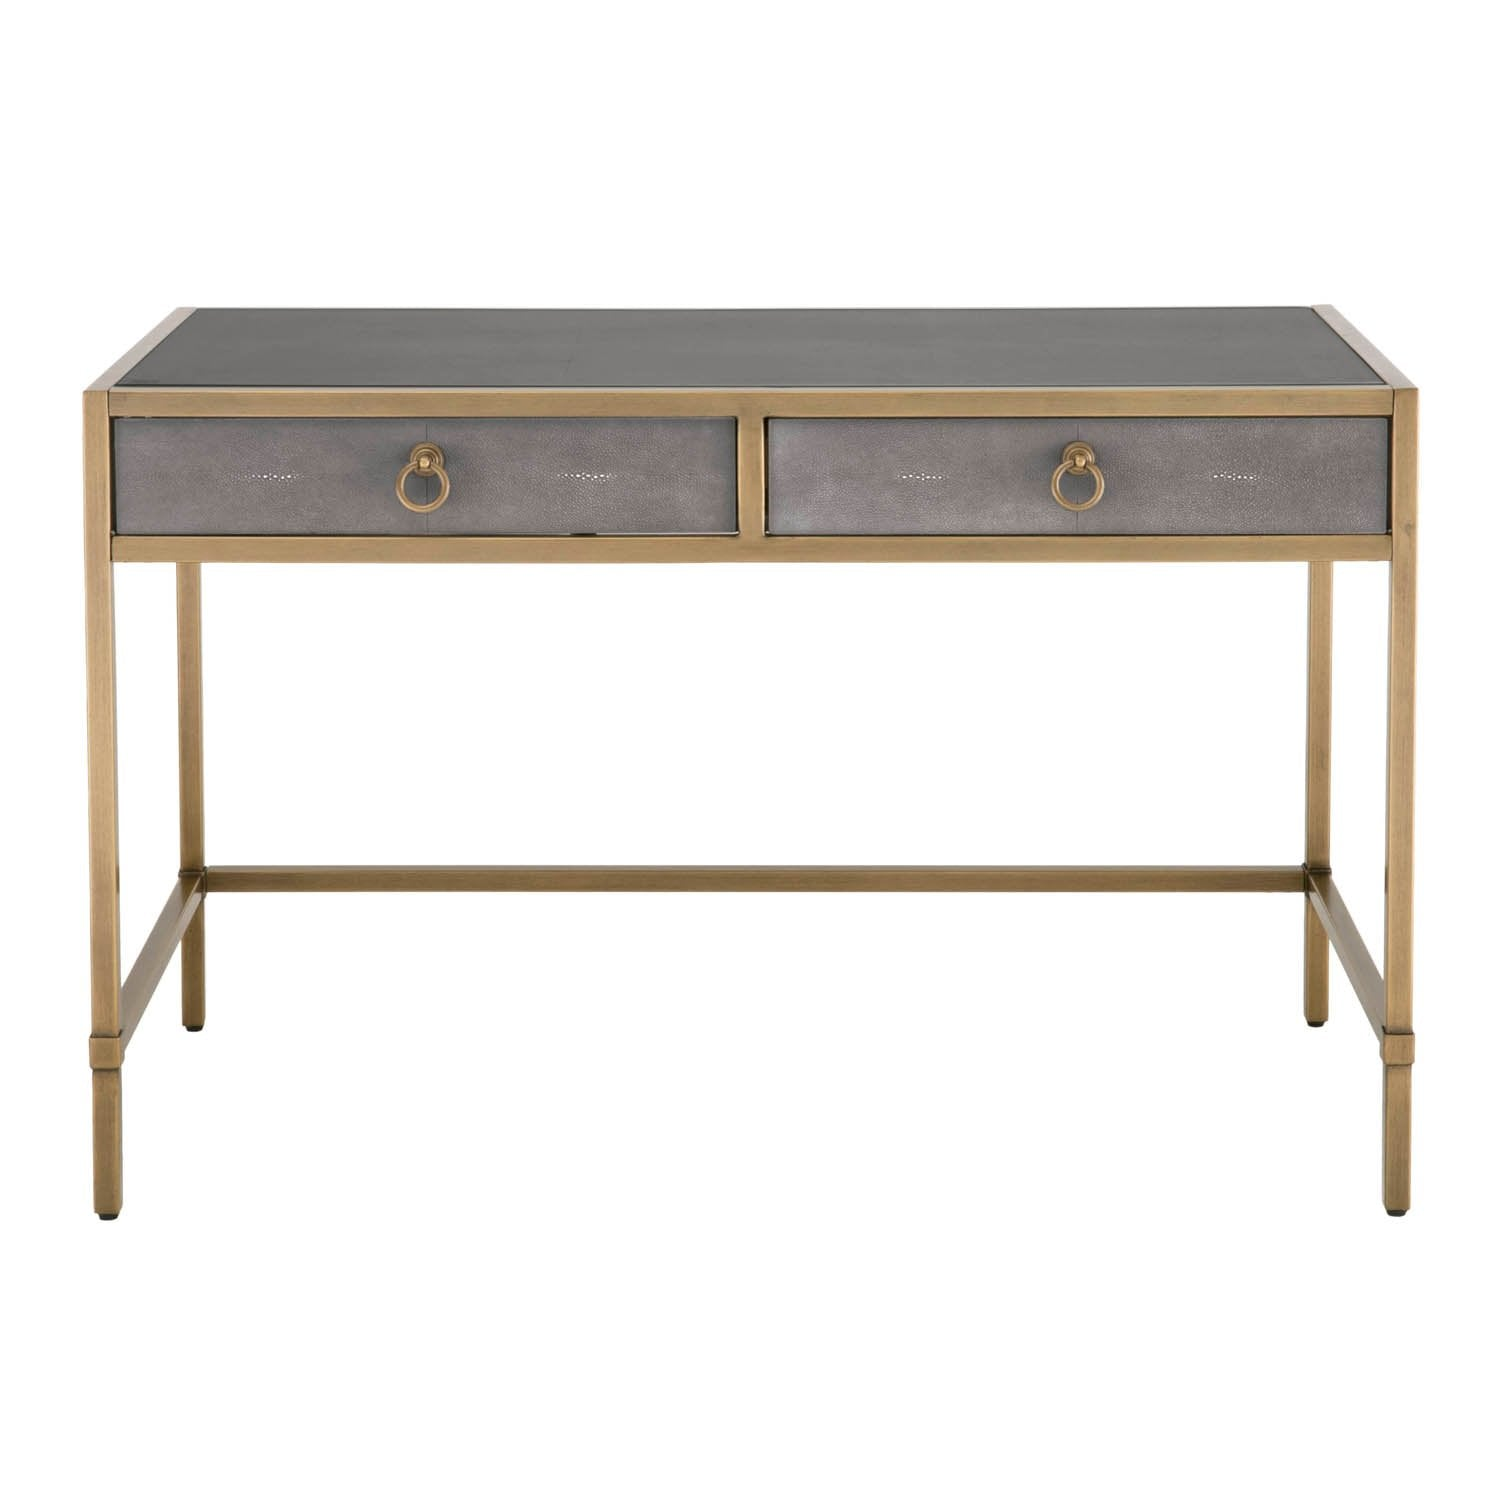 Strand Shagreen Writing Desk in Gray Shagreen